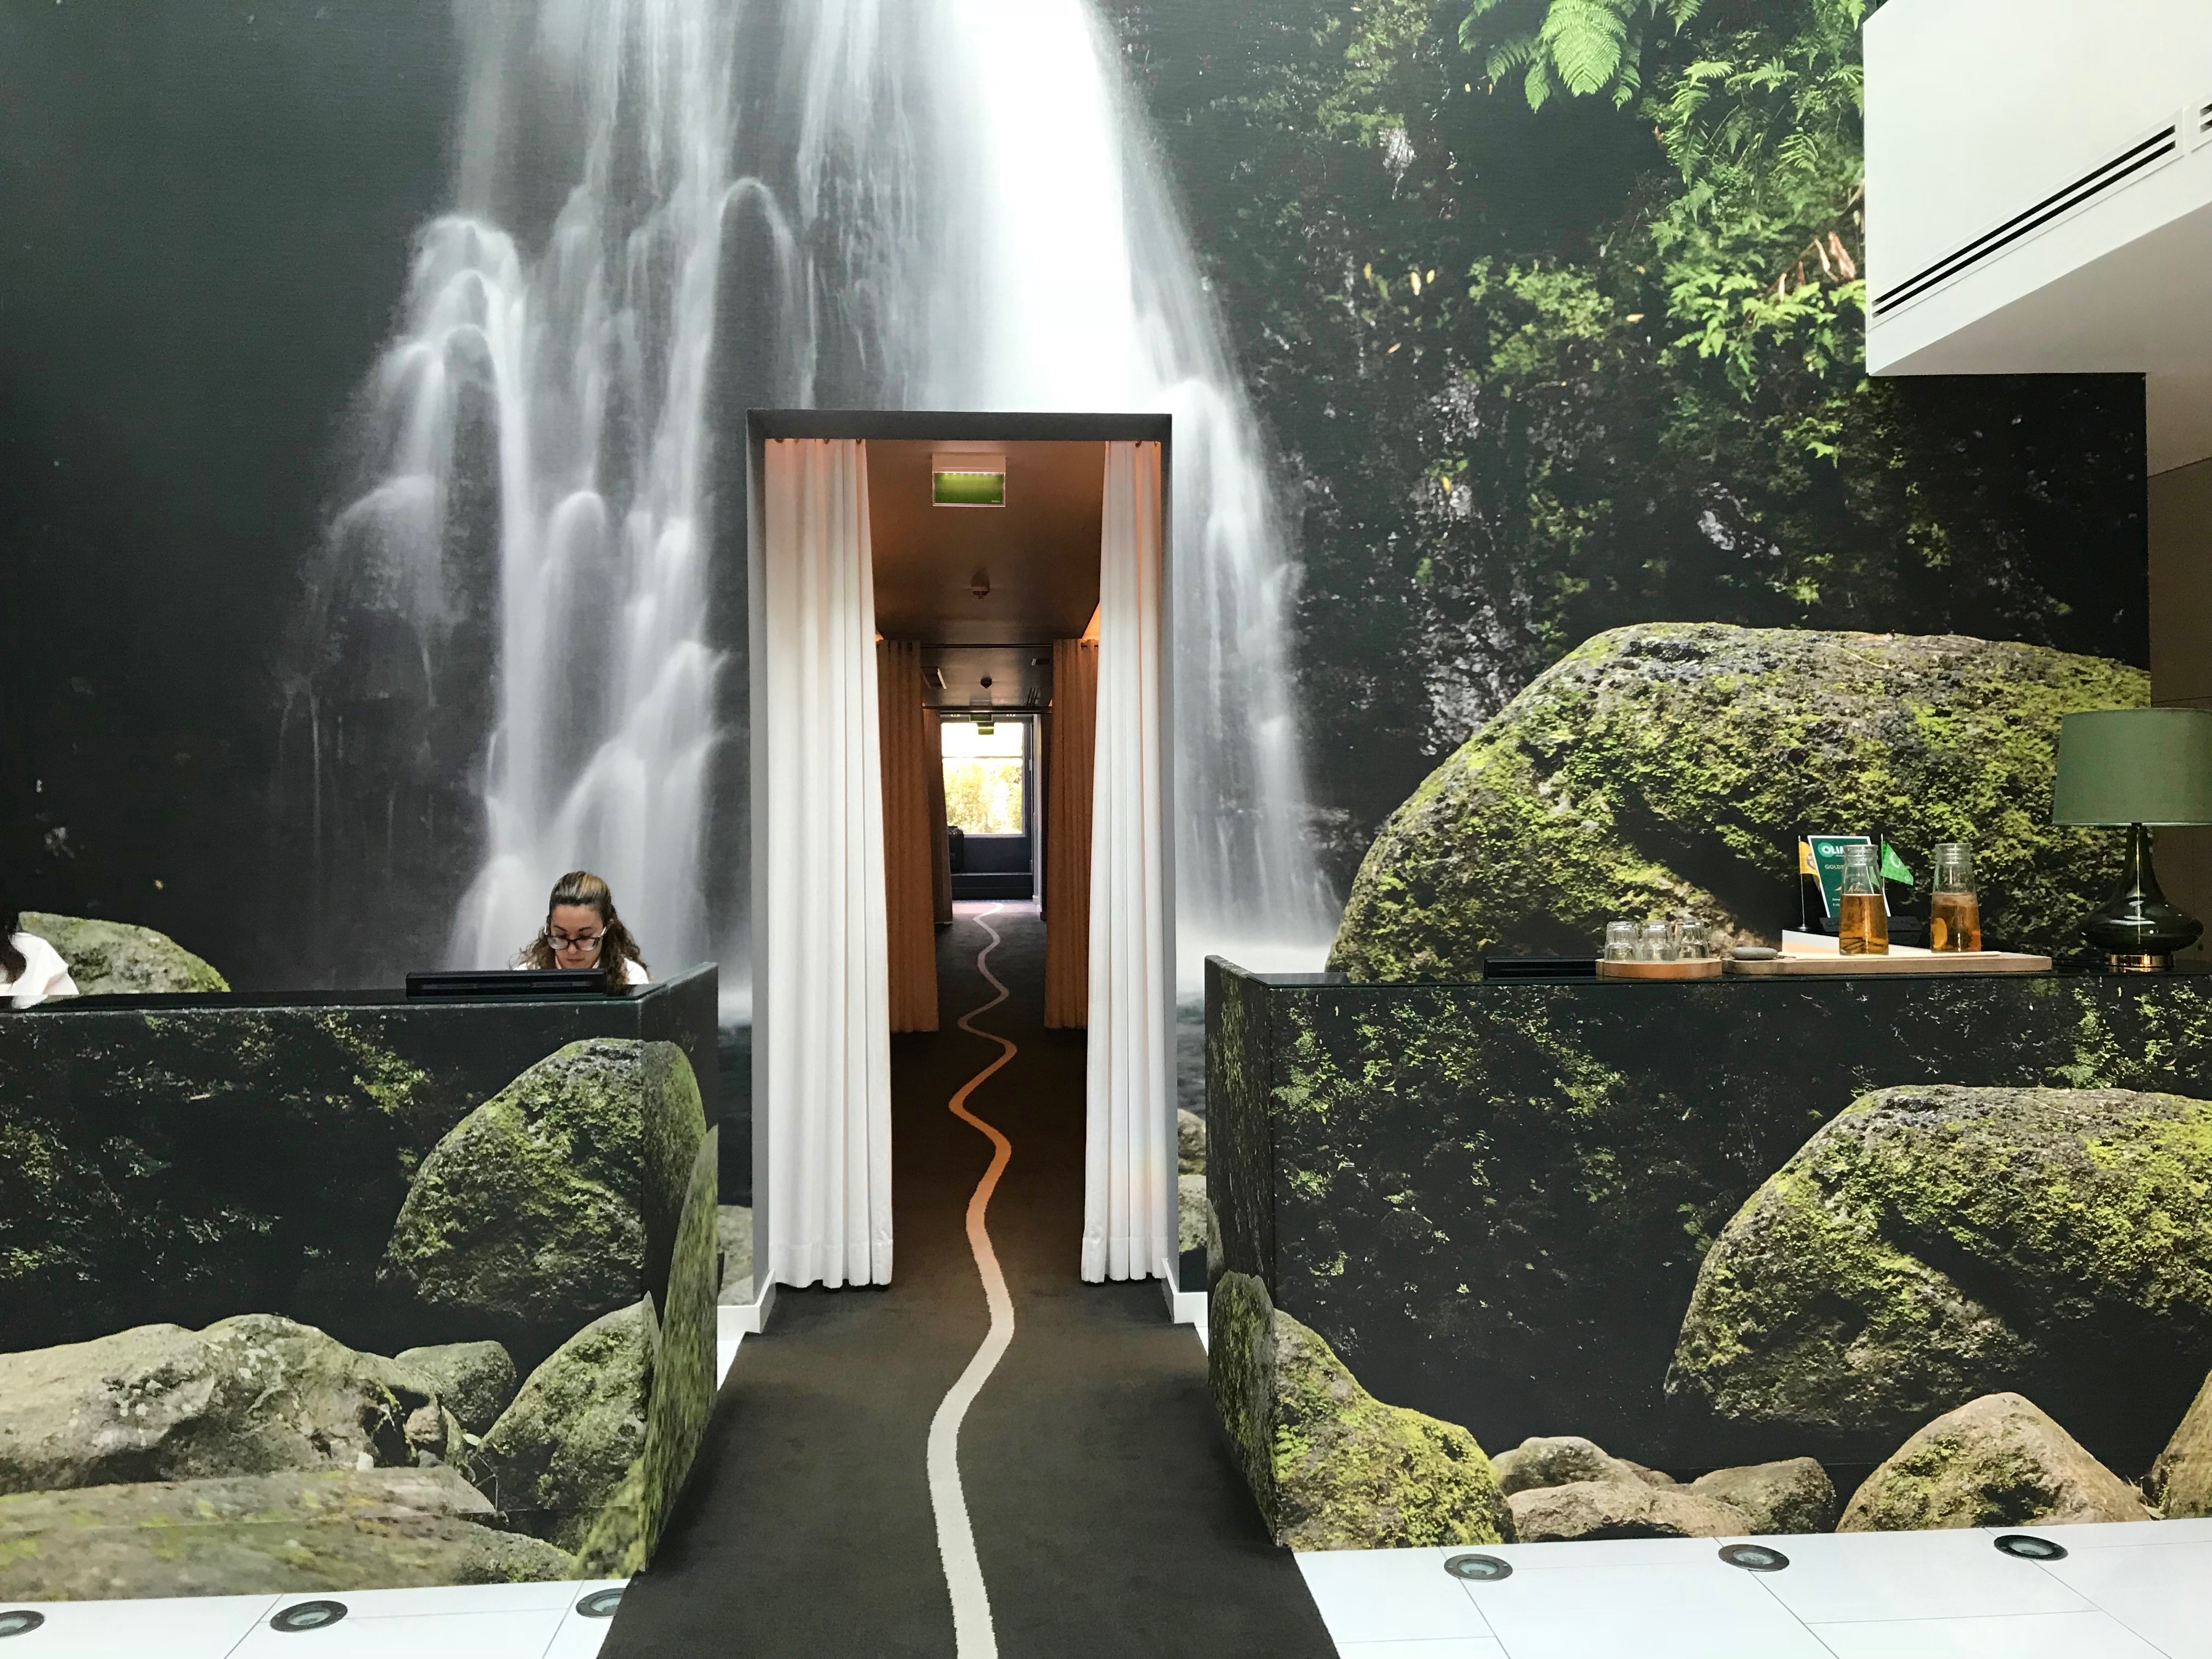 Lobby of Furnas Boutique Hotel, Azores, Portugal - Most romantic hotels in europe, romantic hotels in Portugal